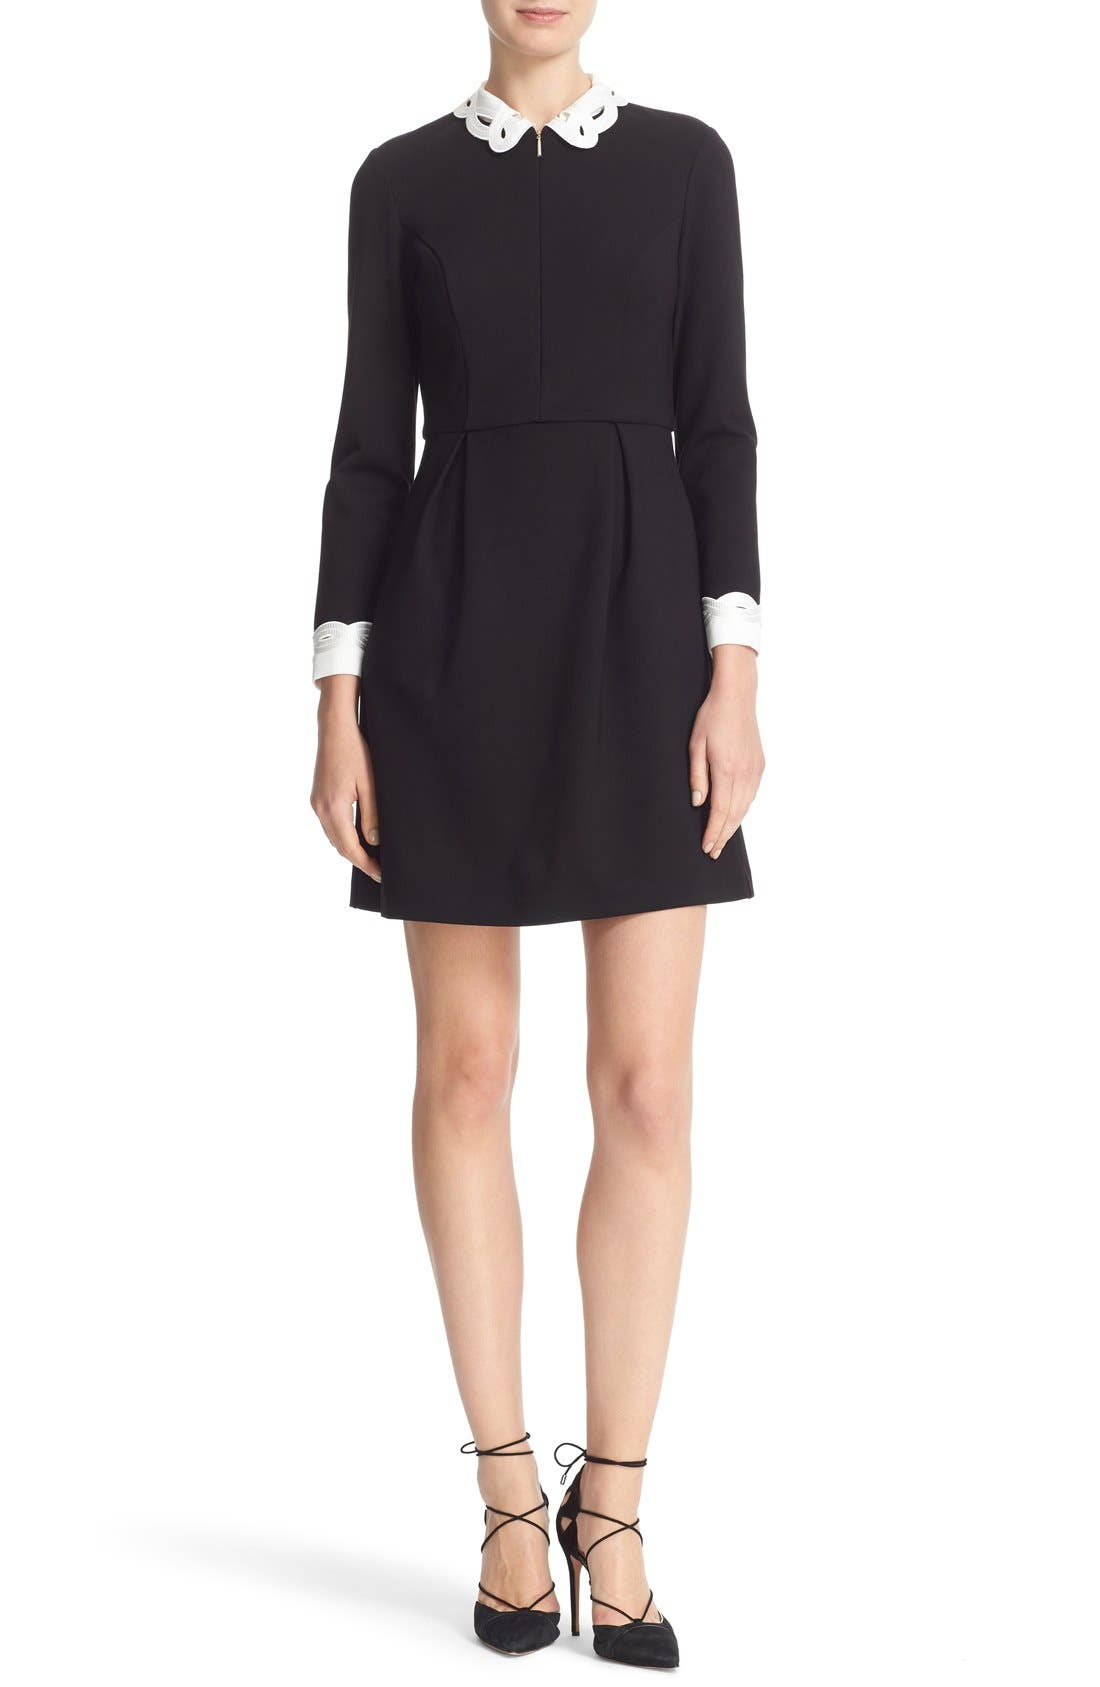 Alternate Image 1 Selected - Ted Baker London Embroidered Collar Fit & Flare Dress